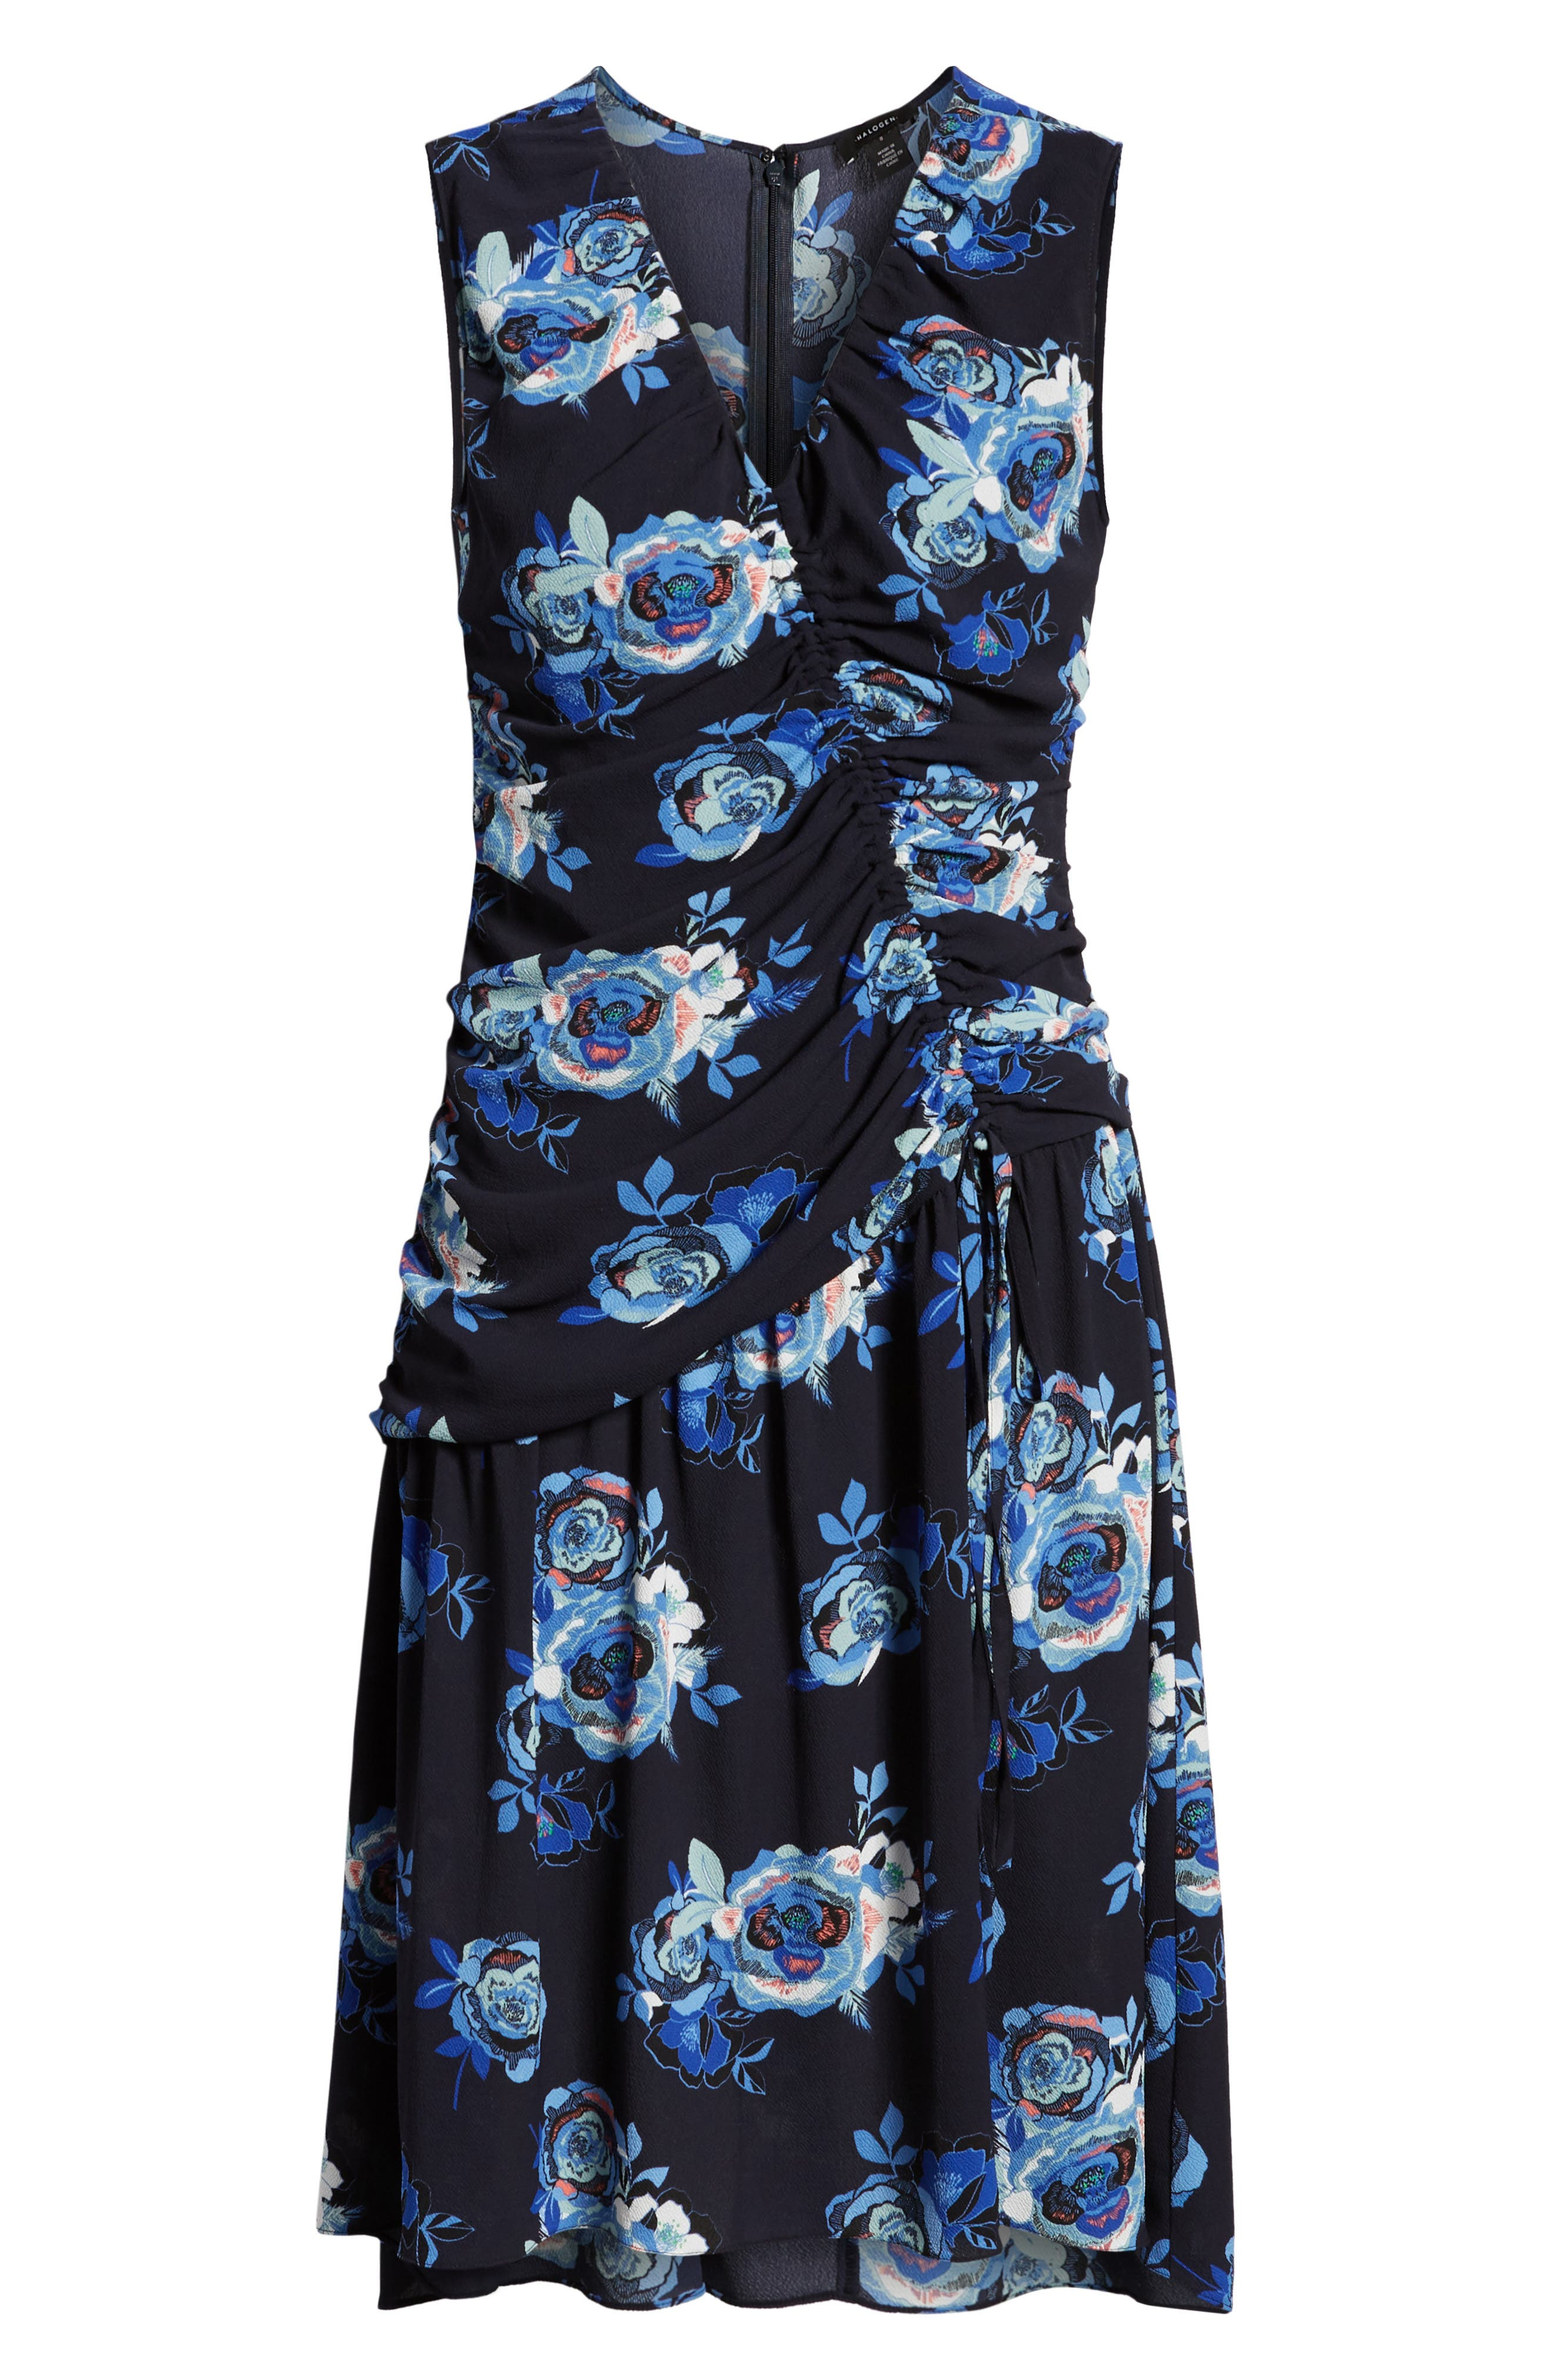 Sleeveless Ruched Dress,                             Alternate thumbnail 7, color,                             Navy- Blue Rose Print